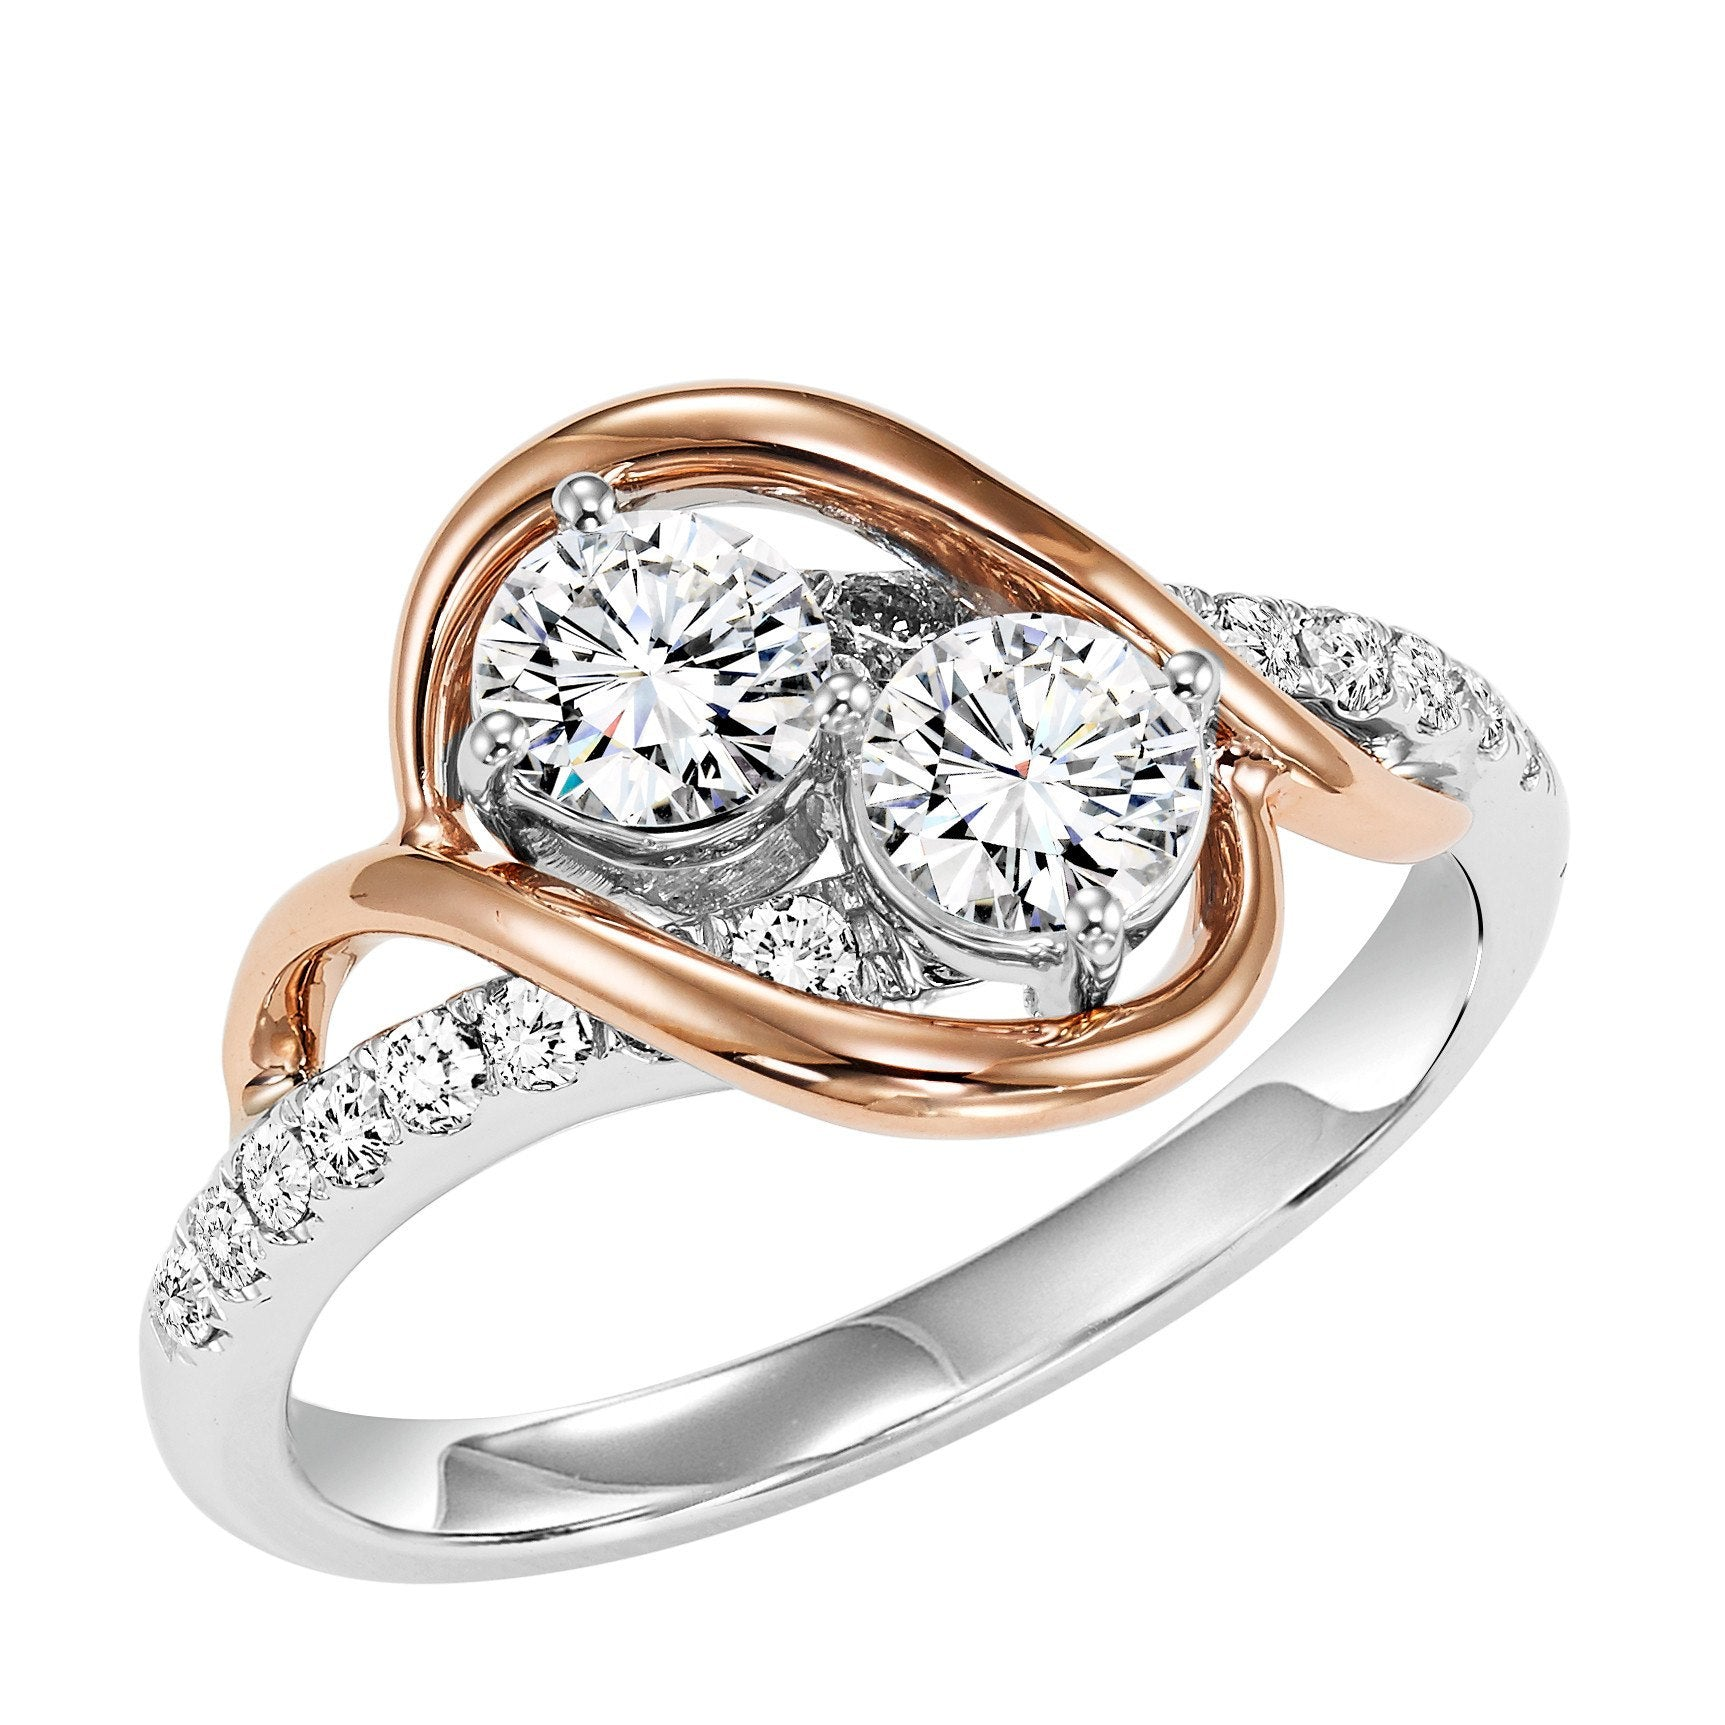 jewellery ring diamond stone jewellers store merivale product petersens